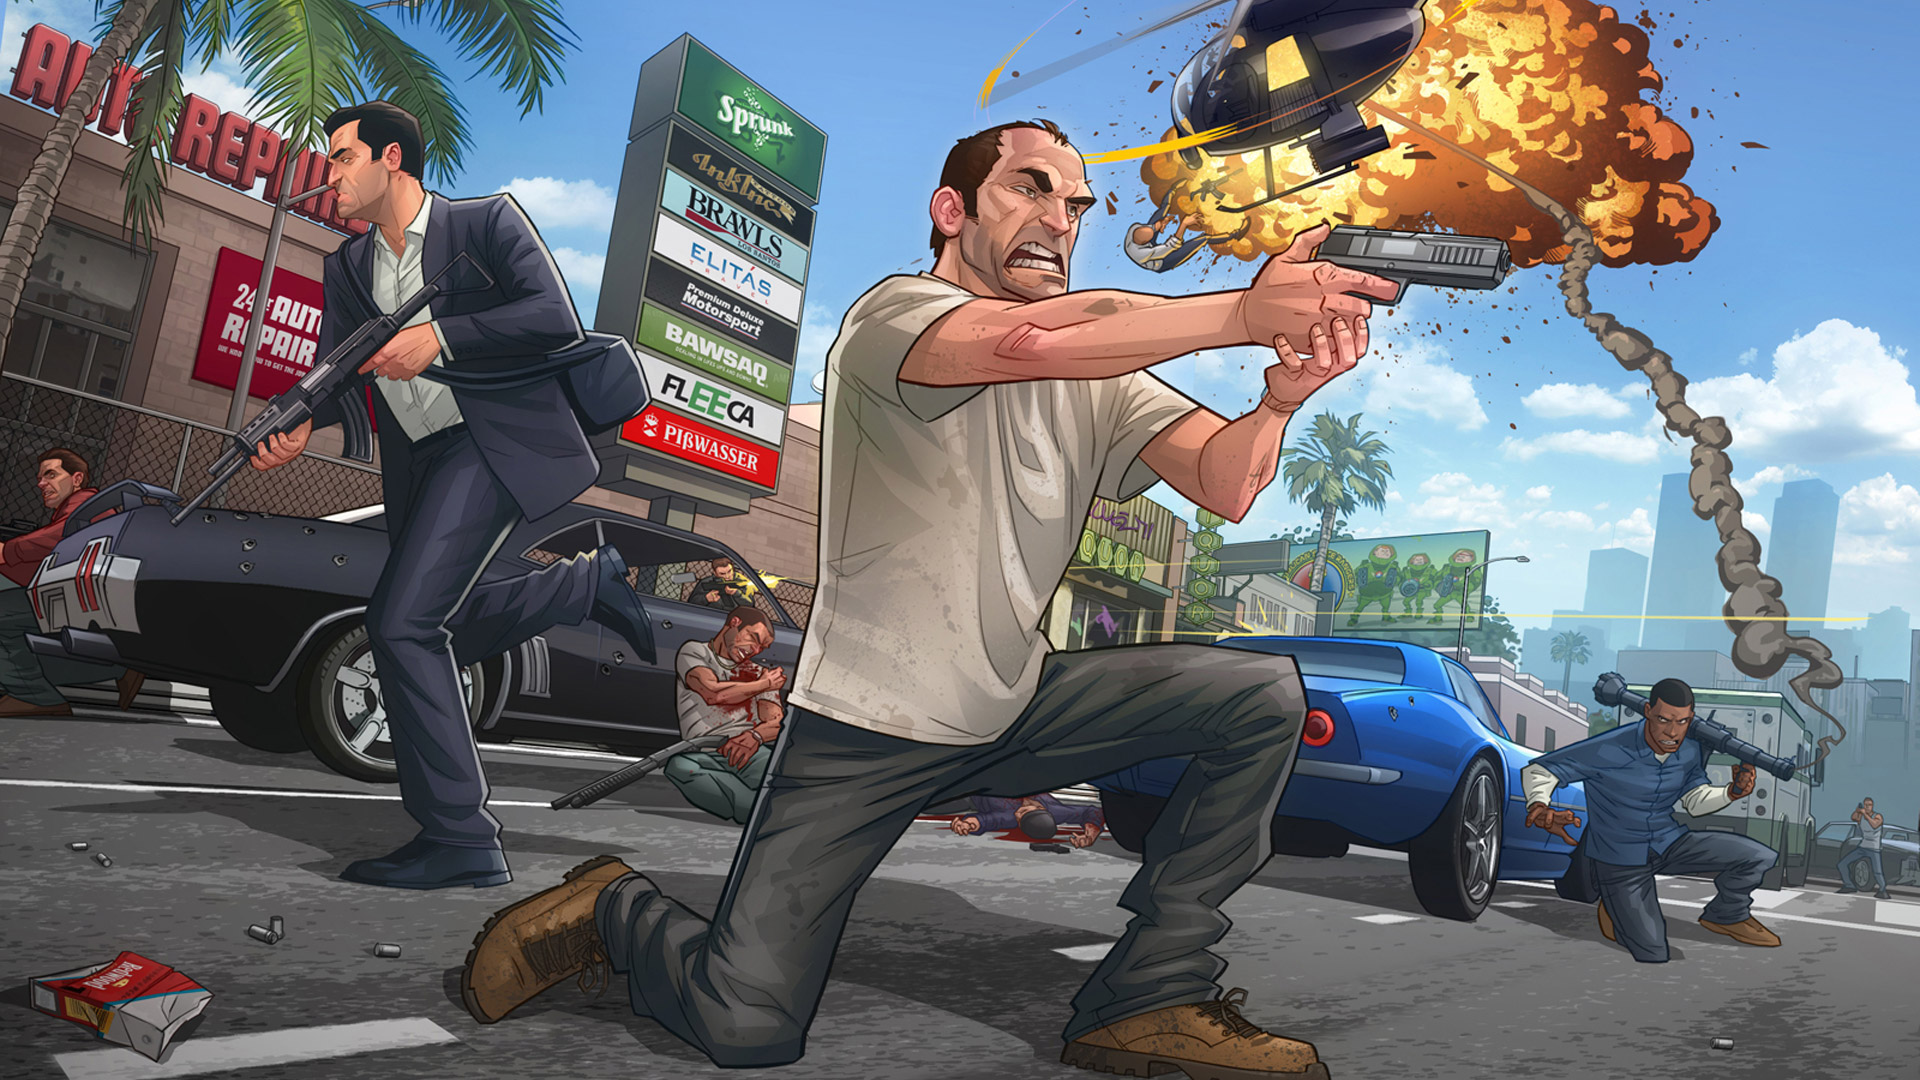 Grand Theft Auto V Wallpaper in 1920x1080 1920x1080